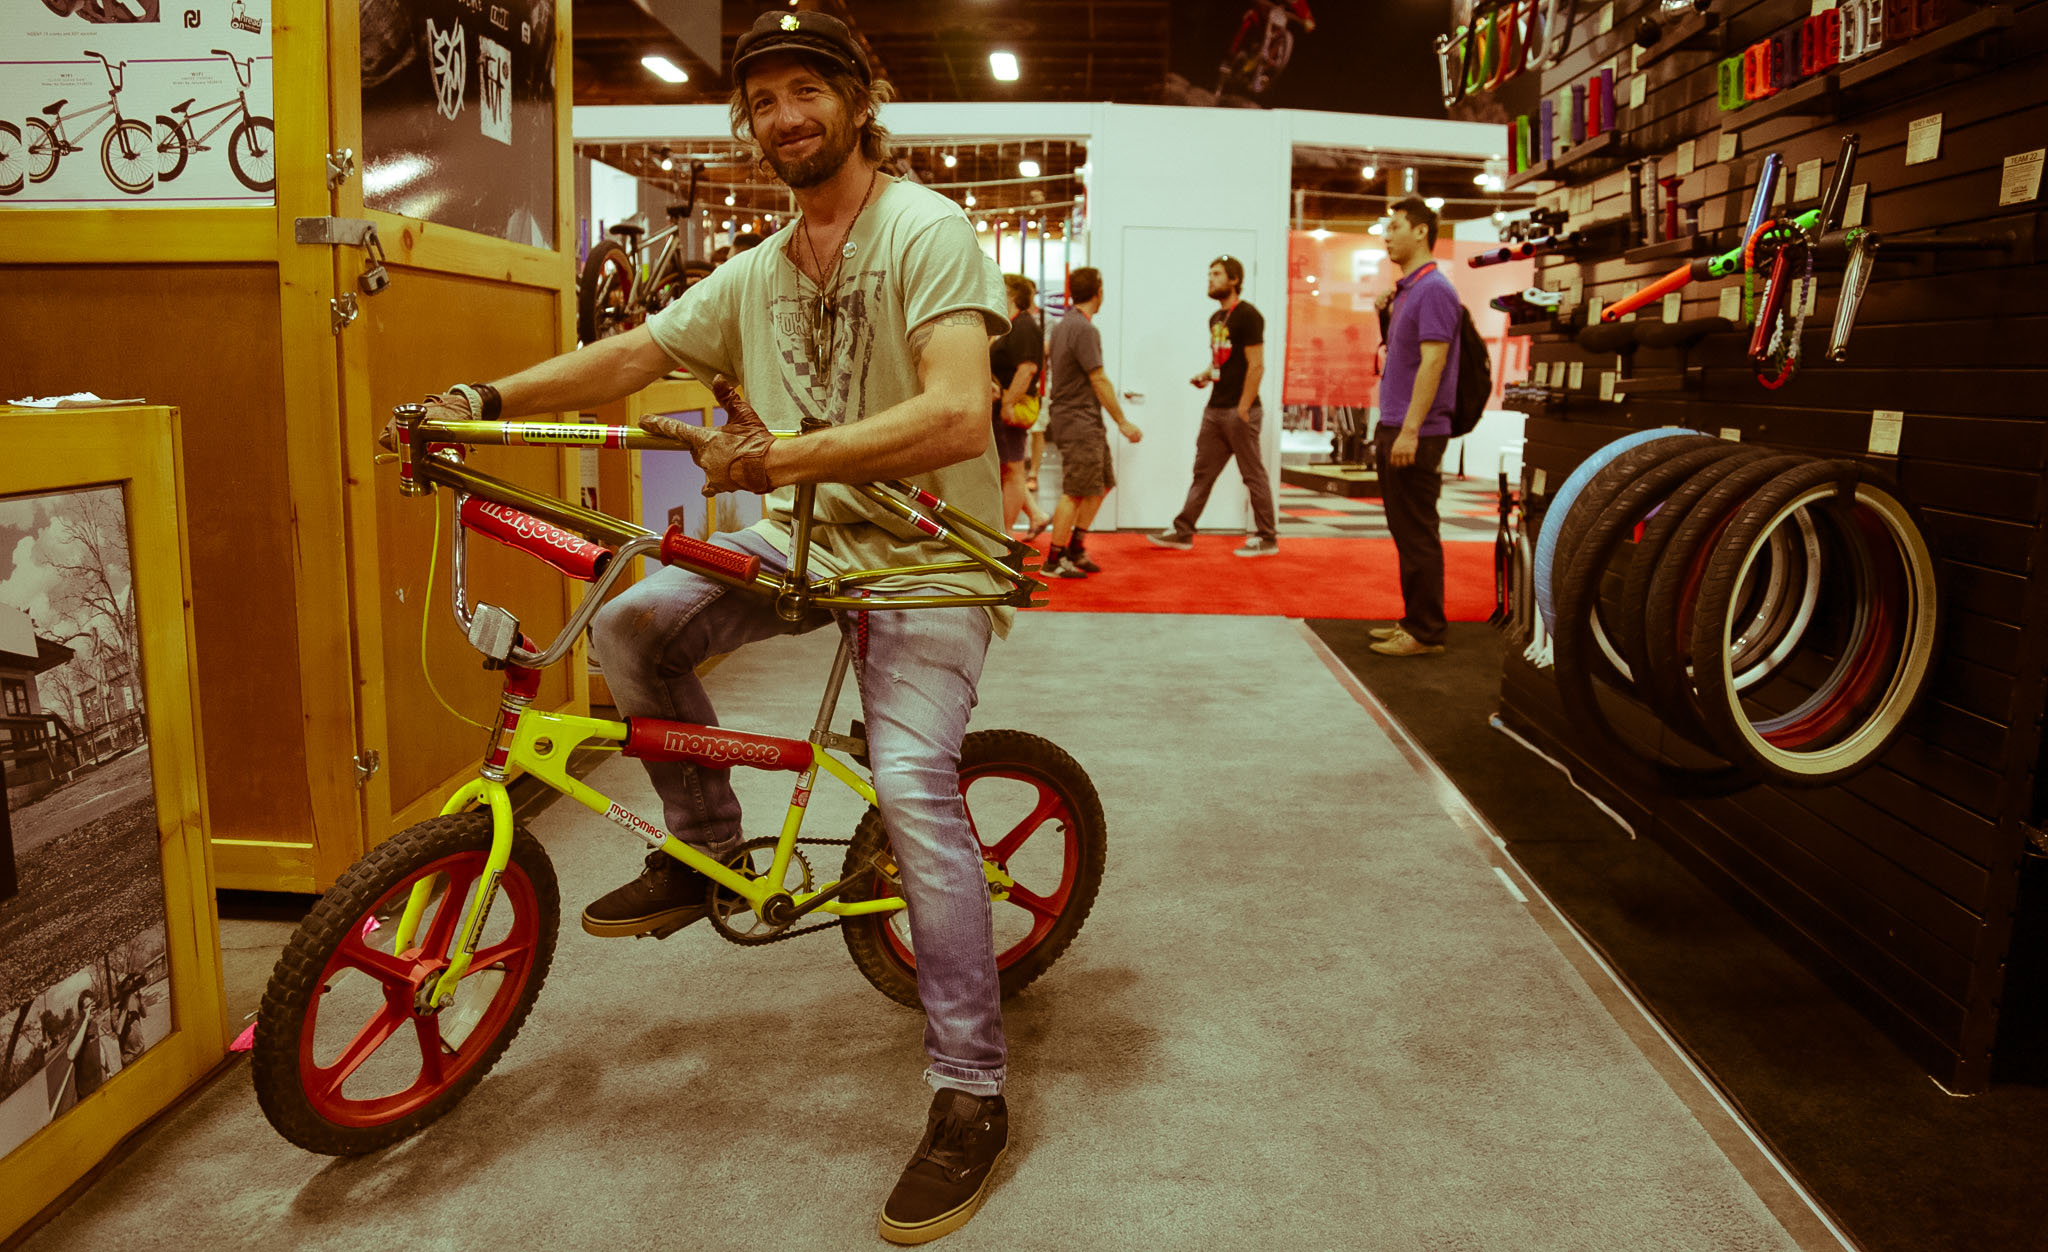 Welcome to Interbike 2013